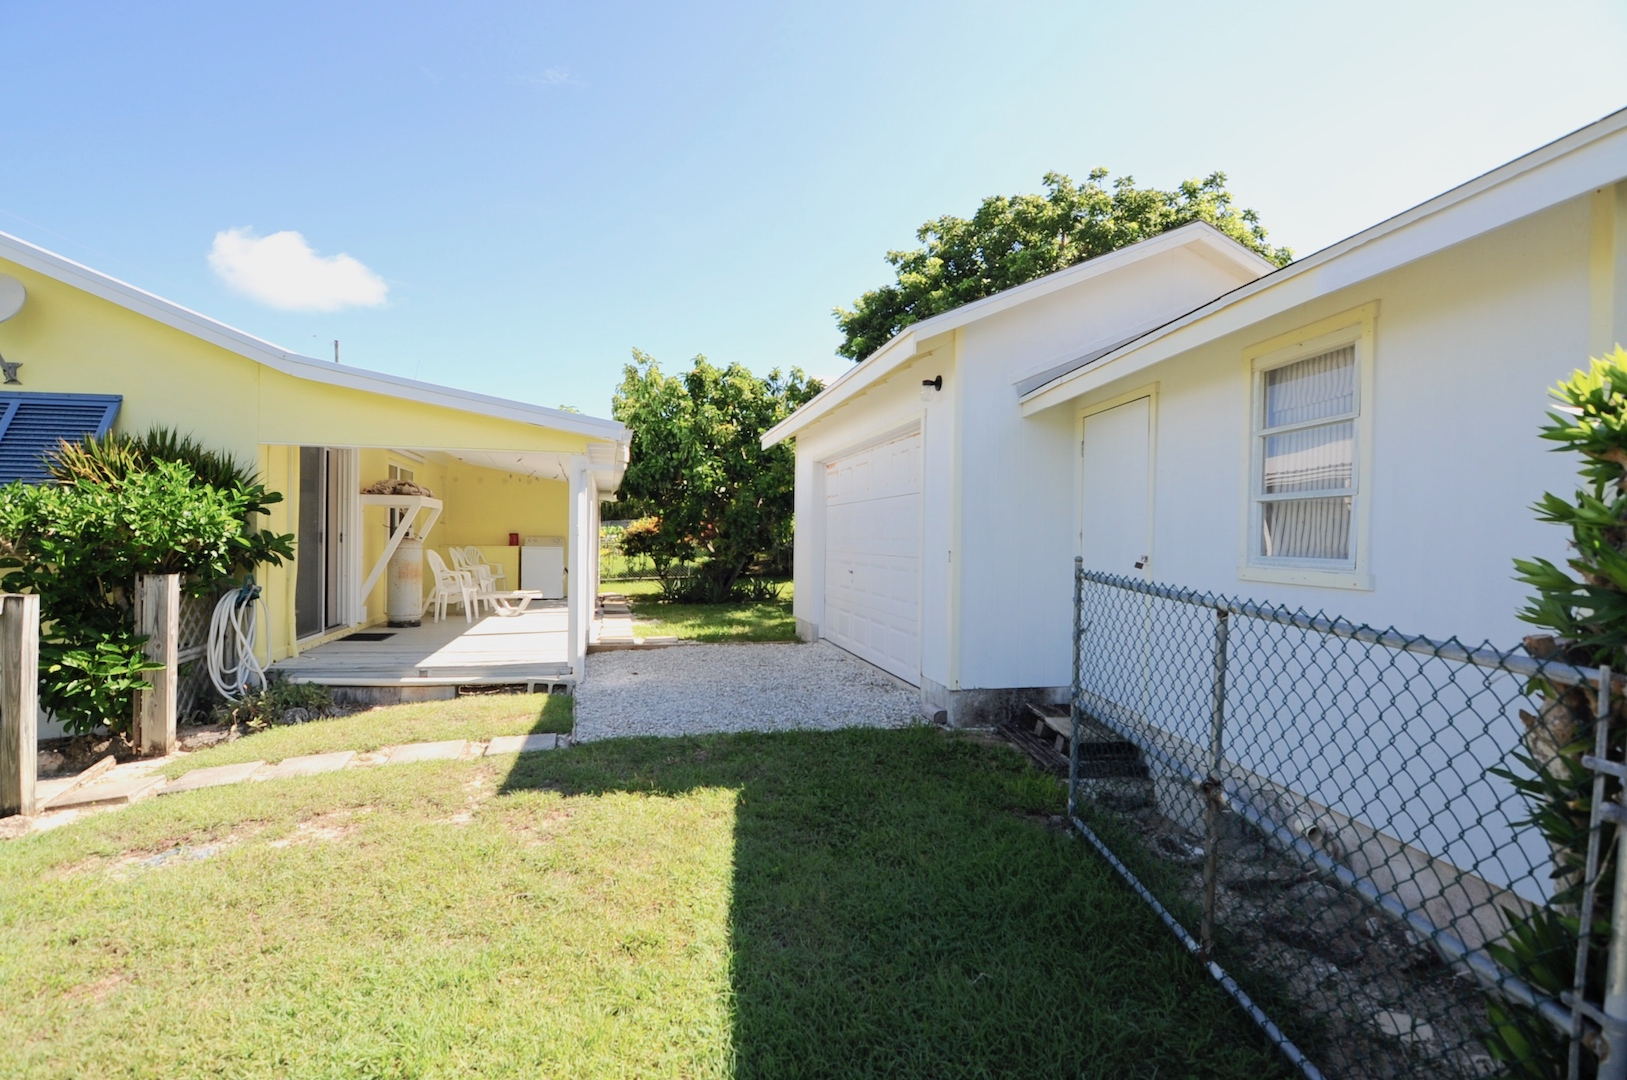 Home for sale in Man-o-war cay Abaco Bahamas with golf cart garage and owners lock up